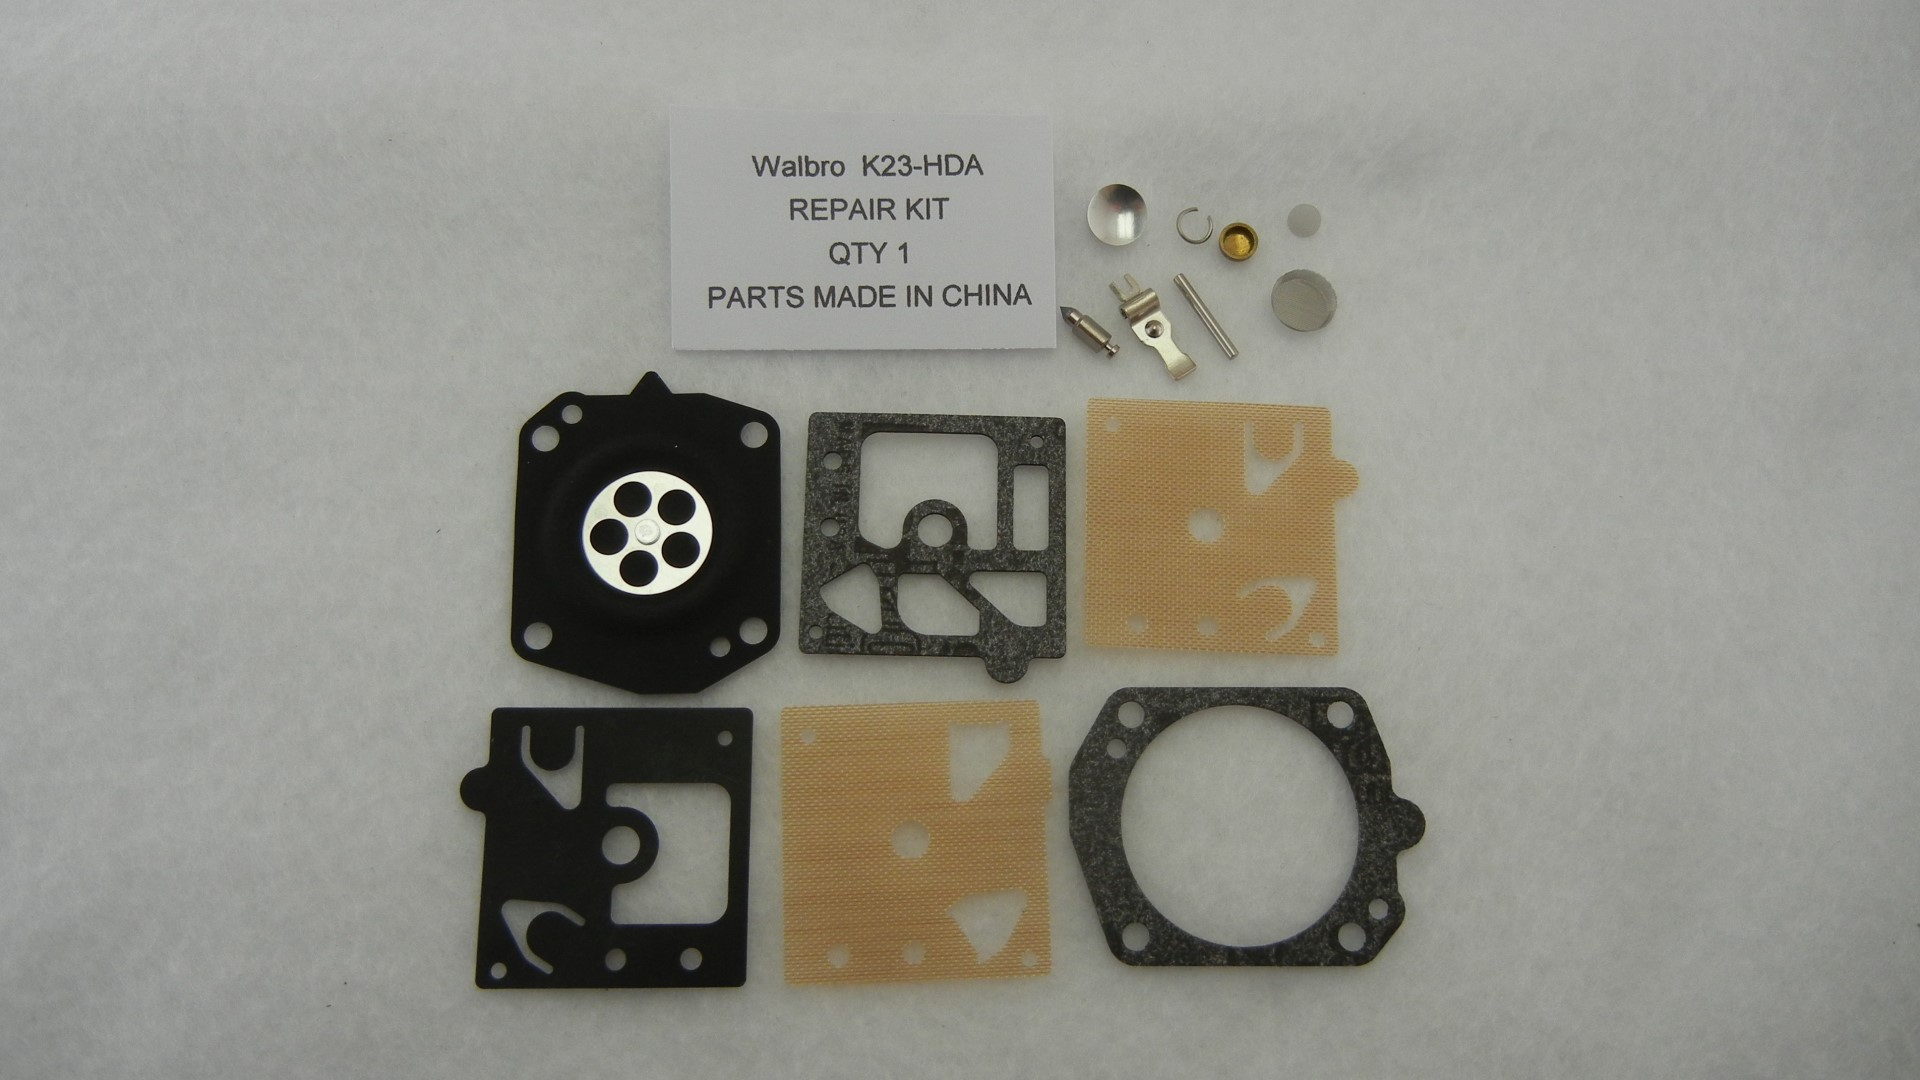 Replacement Walbro K23-HDA carburetor rebuild kit